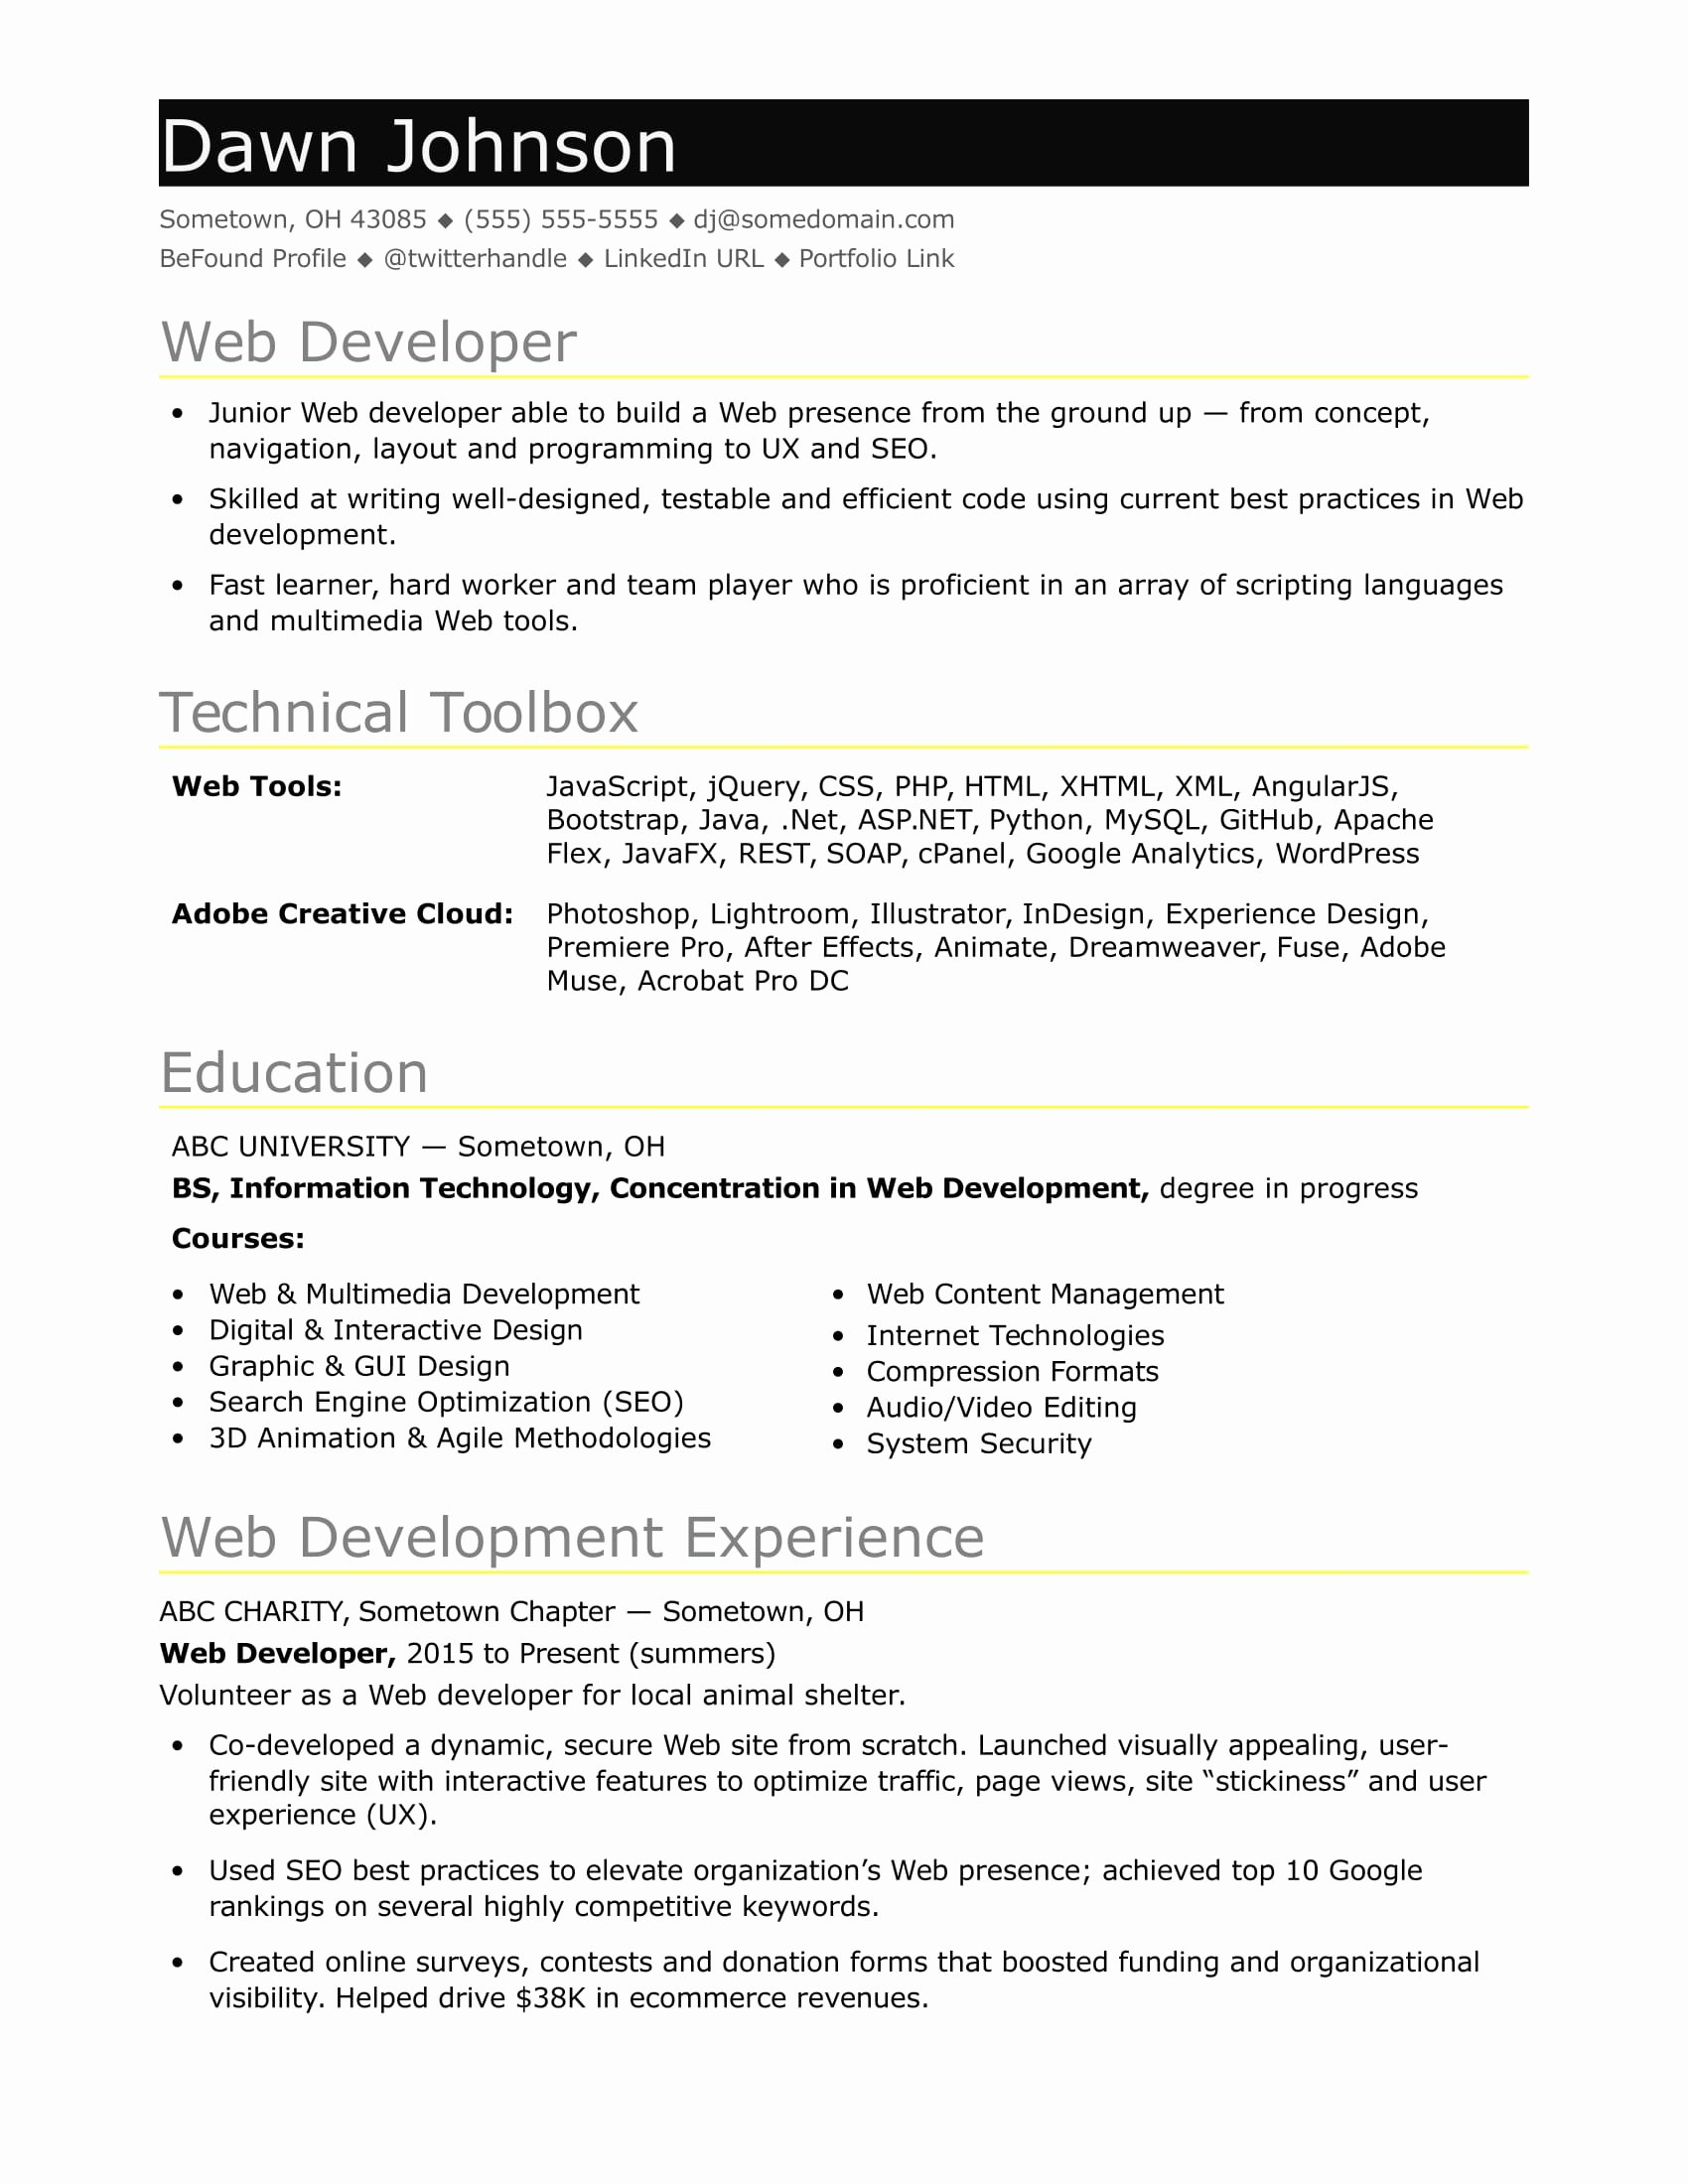 Entry Level It Resume with No Experience Beautiful Sample Resume for An Entry Level It Developer